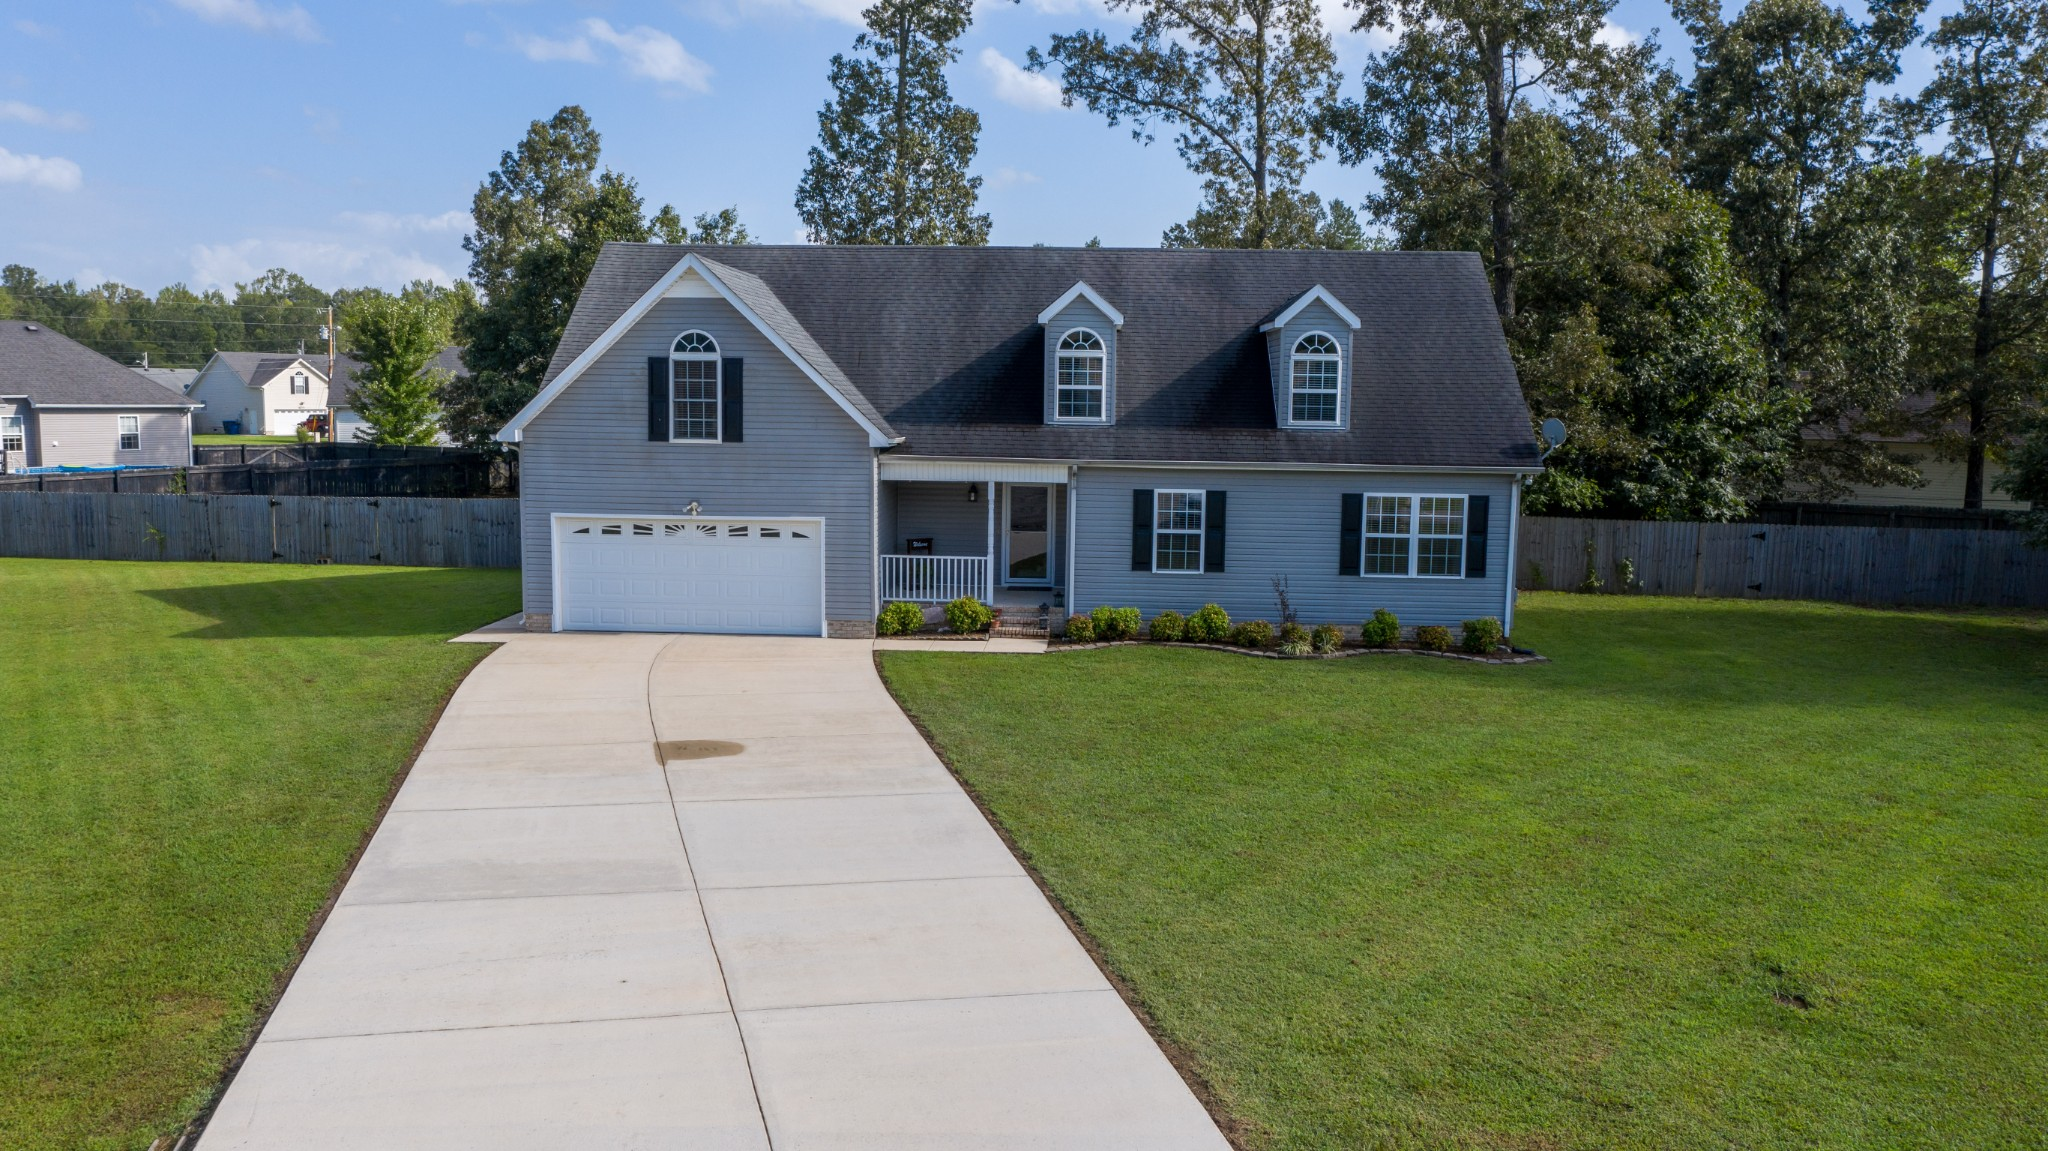 717 Indian Springs Cir Property Photo